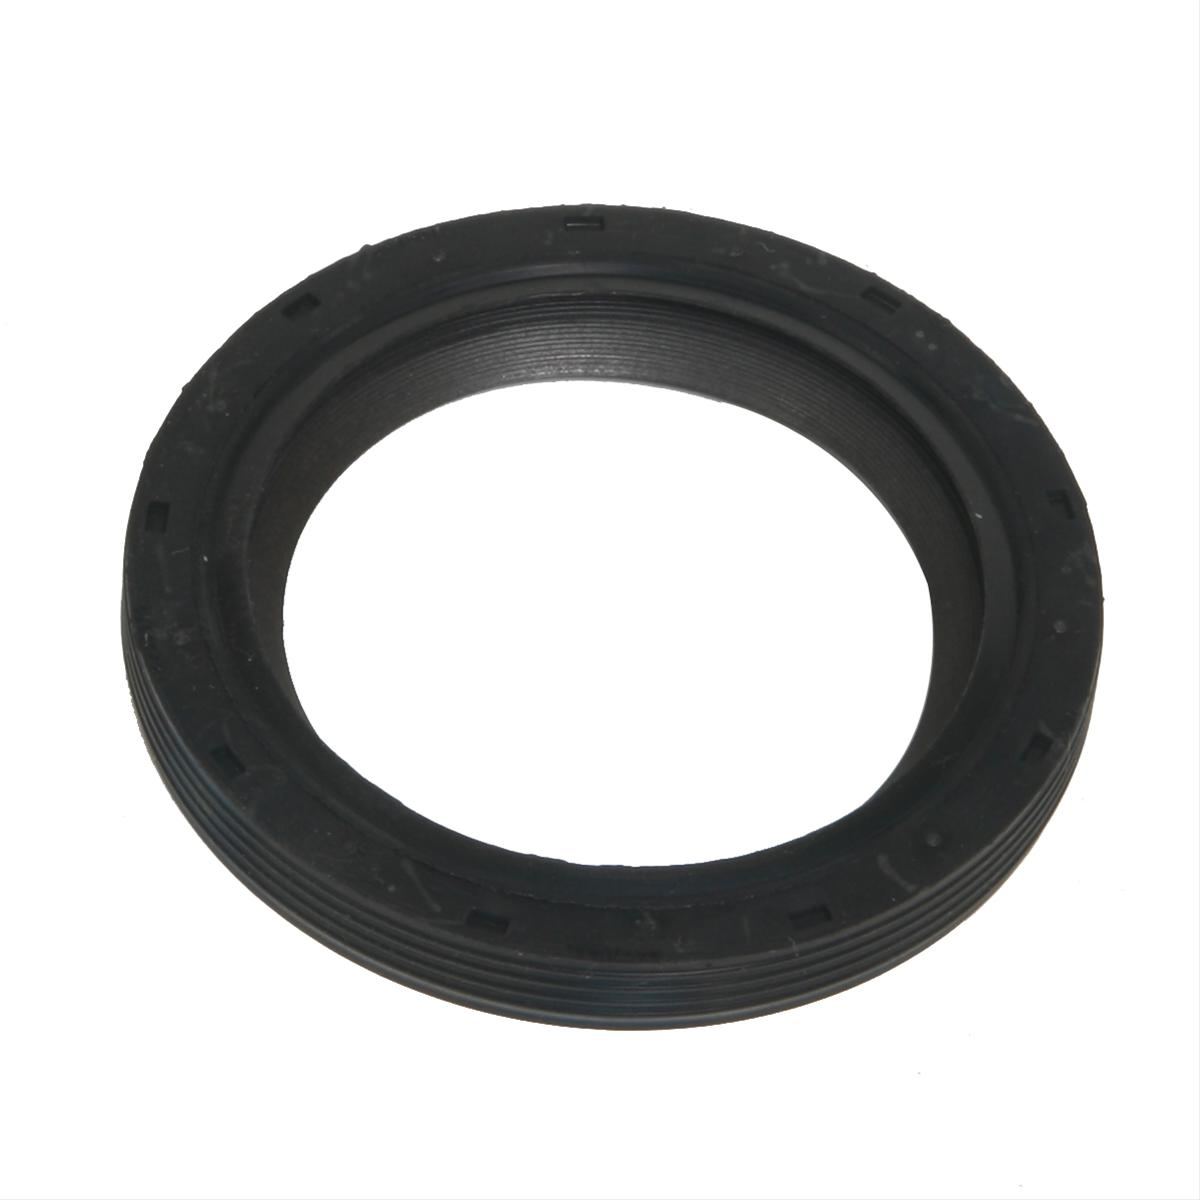 98-02 GM LS1 Front Cover Crankshaft Seal